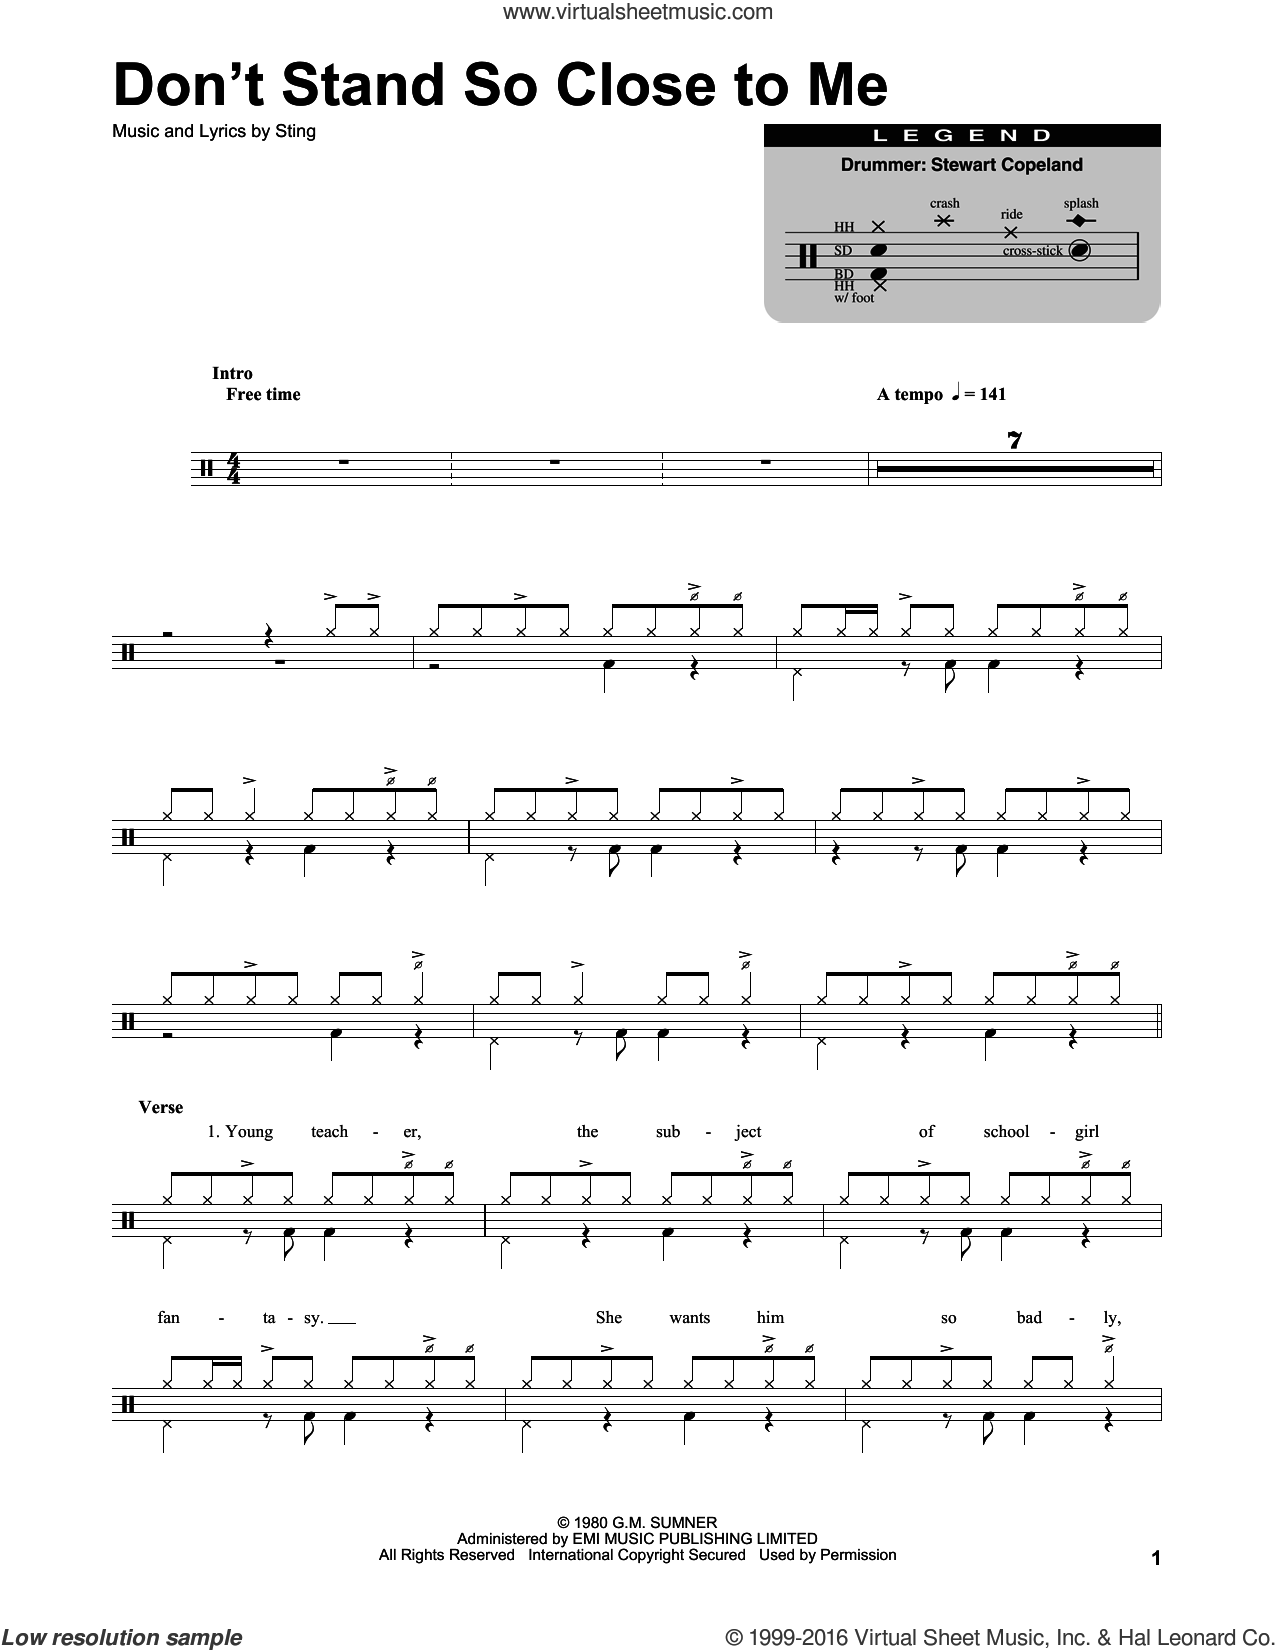 Don't Stand So Close To Me sheet music for drums by The Police and Sting, intermediate skill level